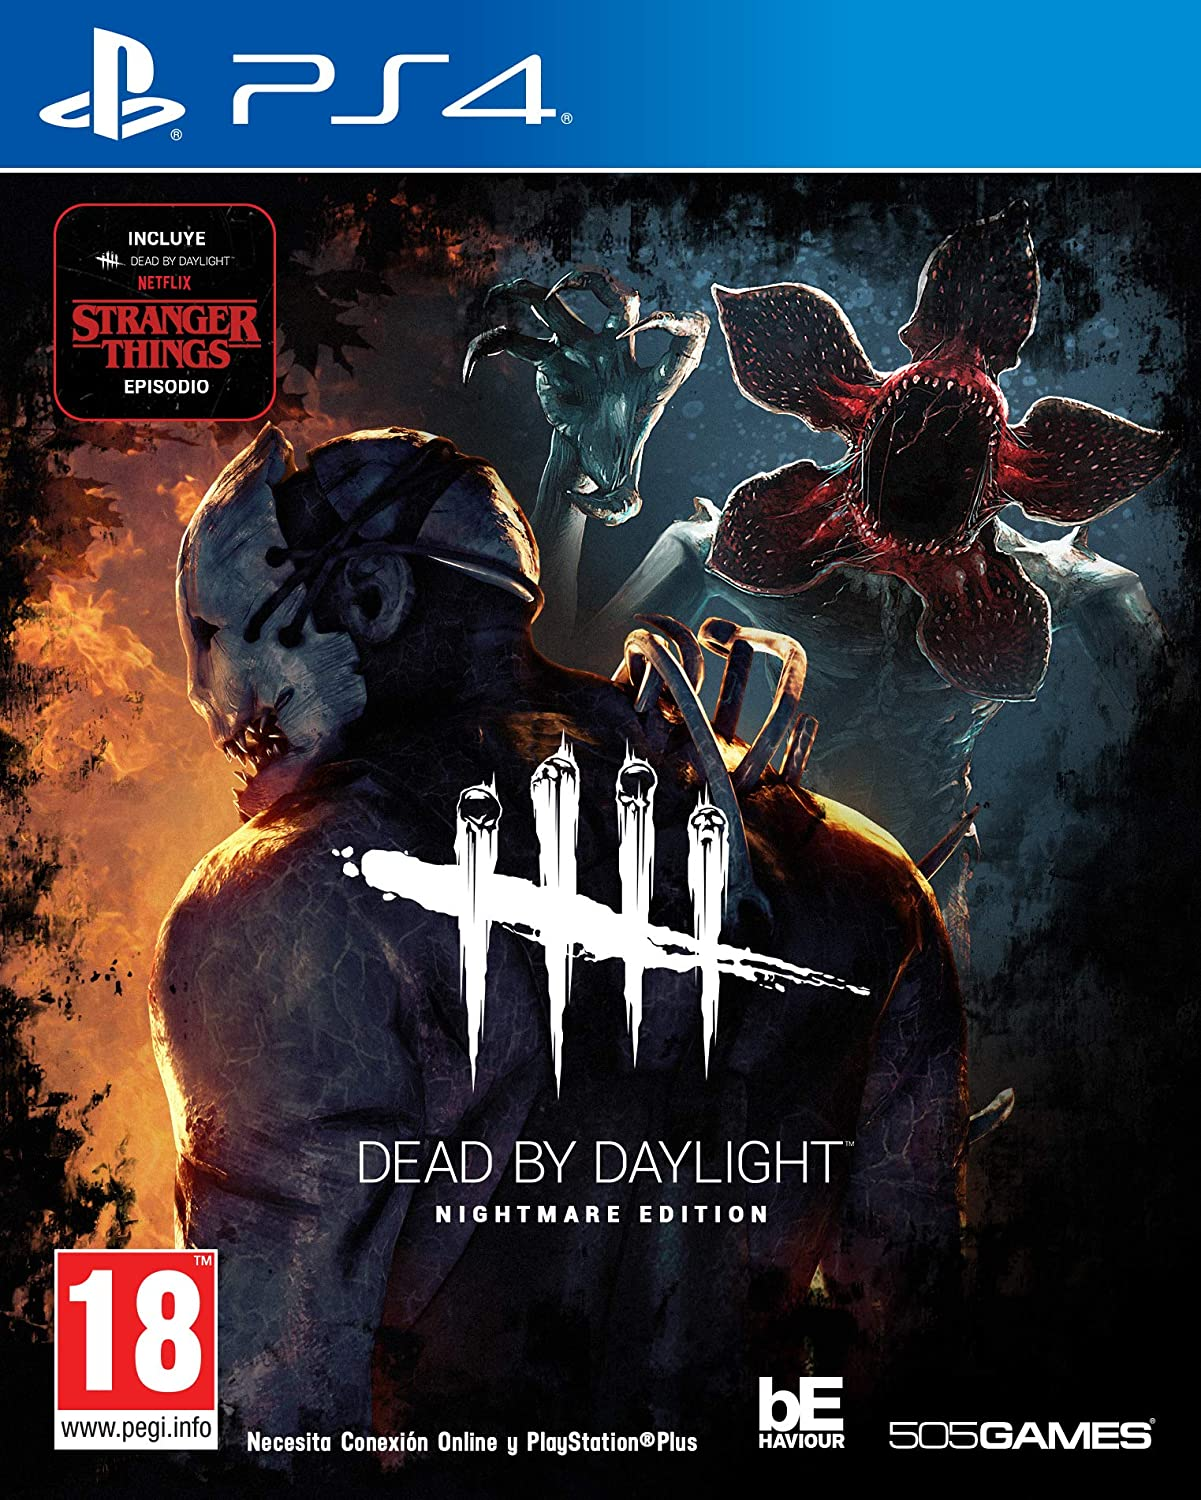 Dead By Daylight Nightmare Edition -Xbox One, PlayStation 4